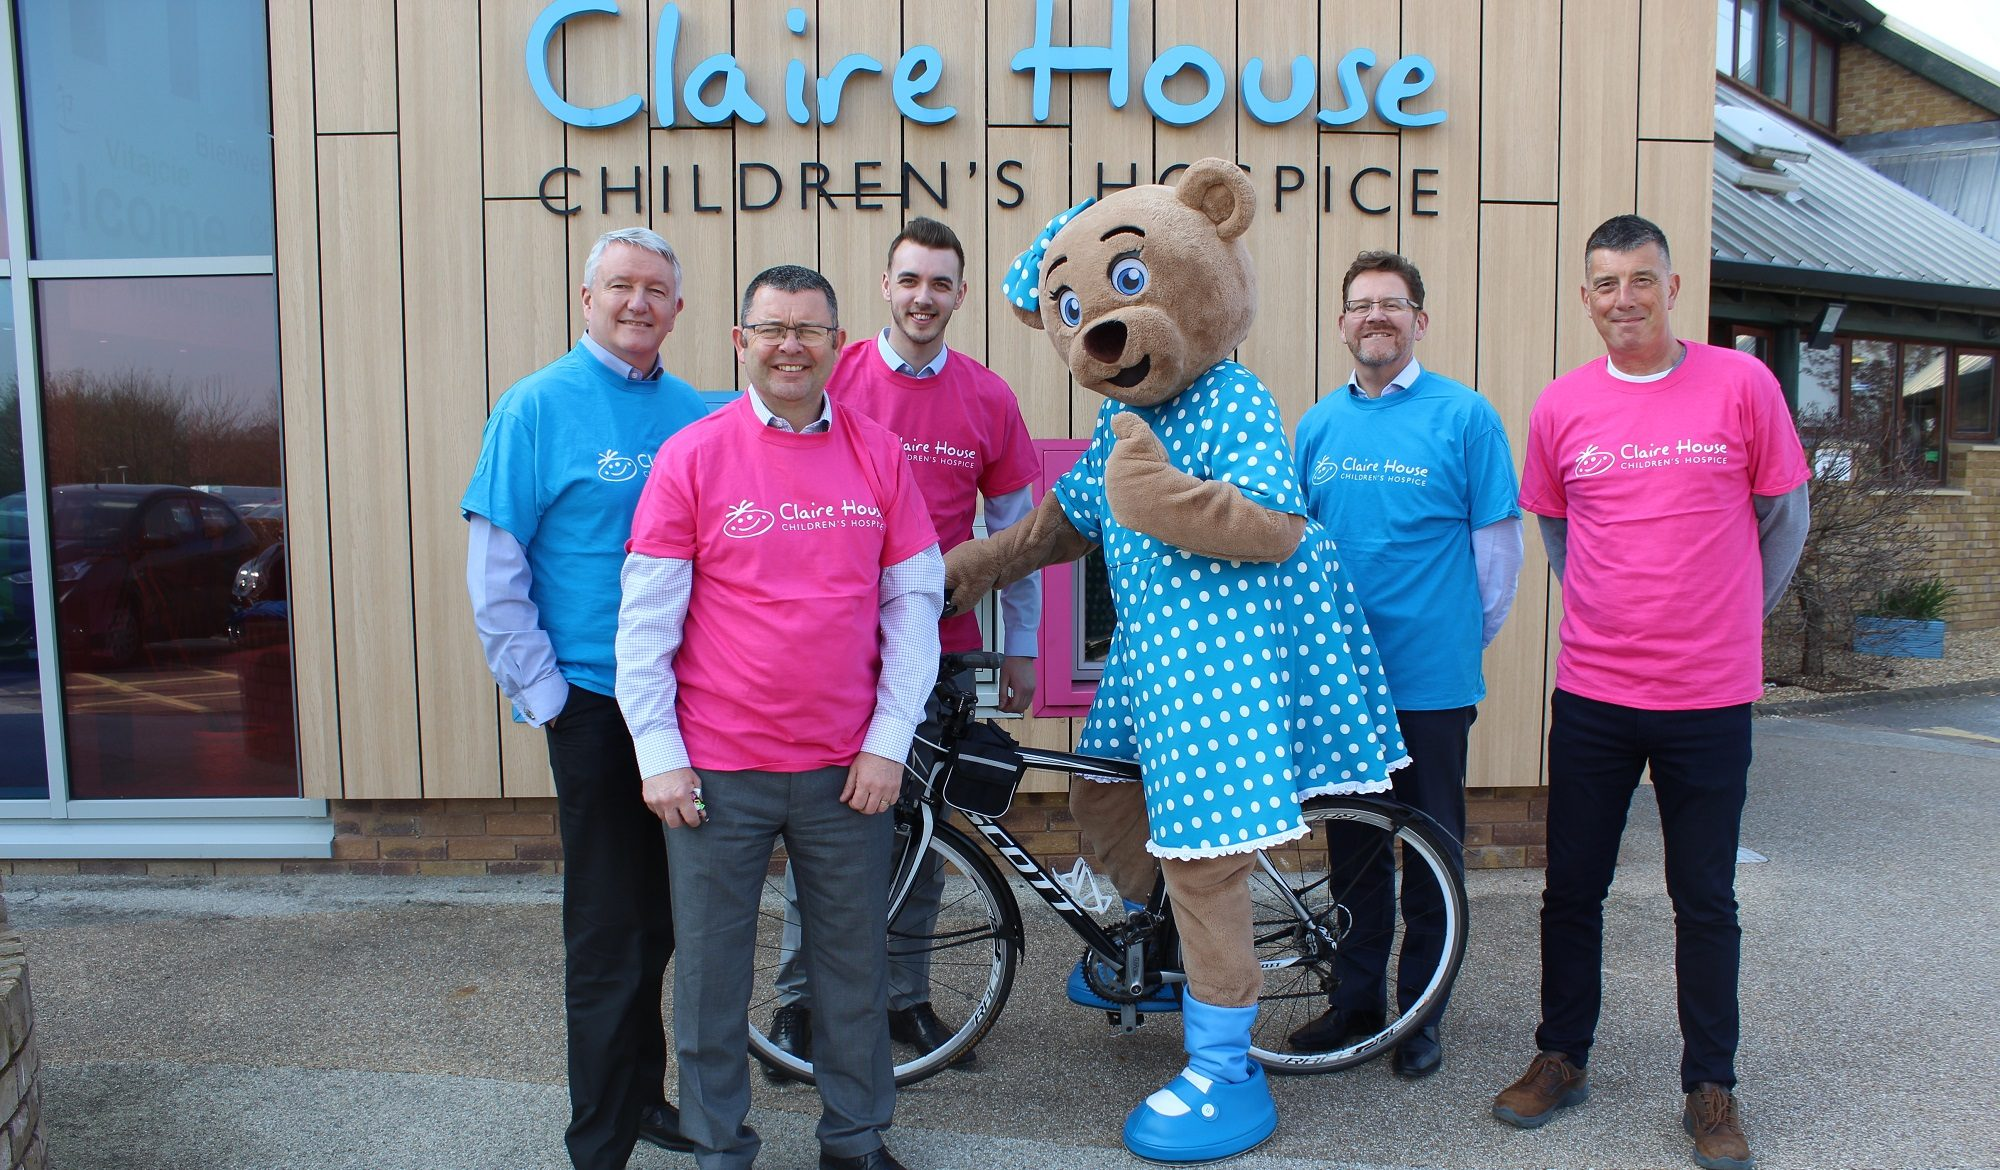 Andy and Co's bike ride will raise money for Liverpool children's hospice